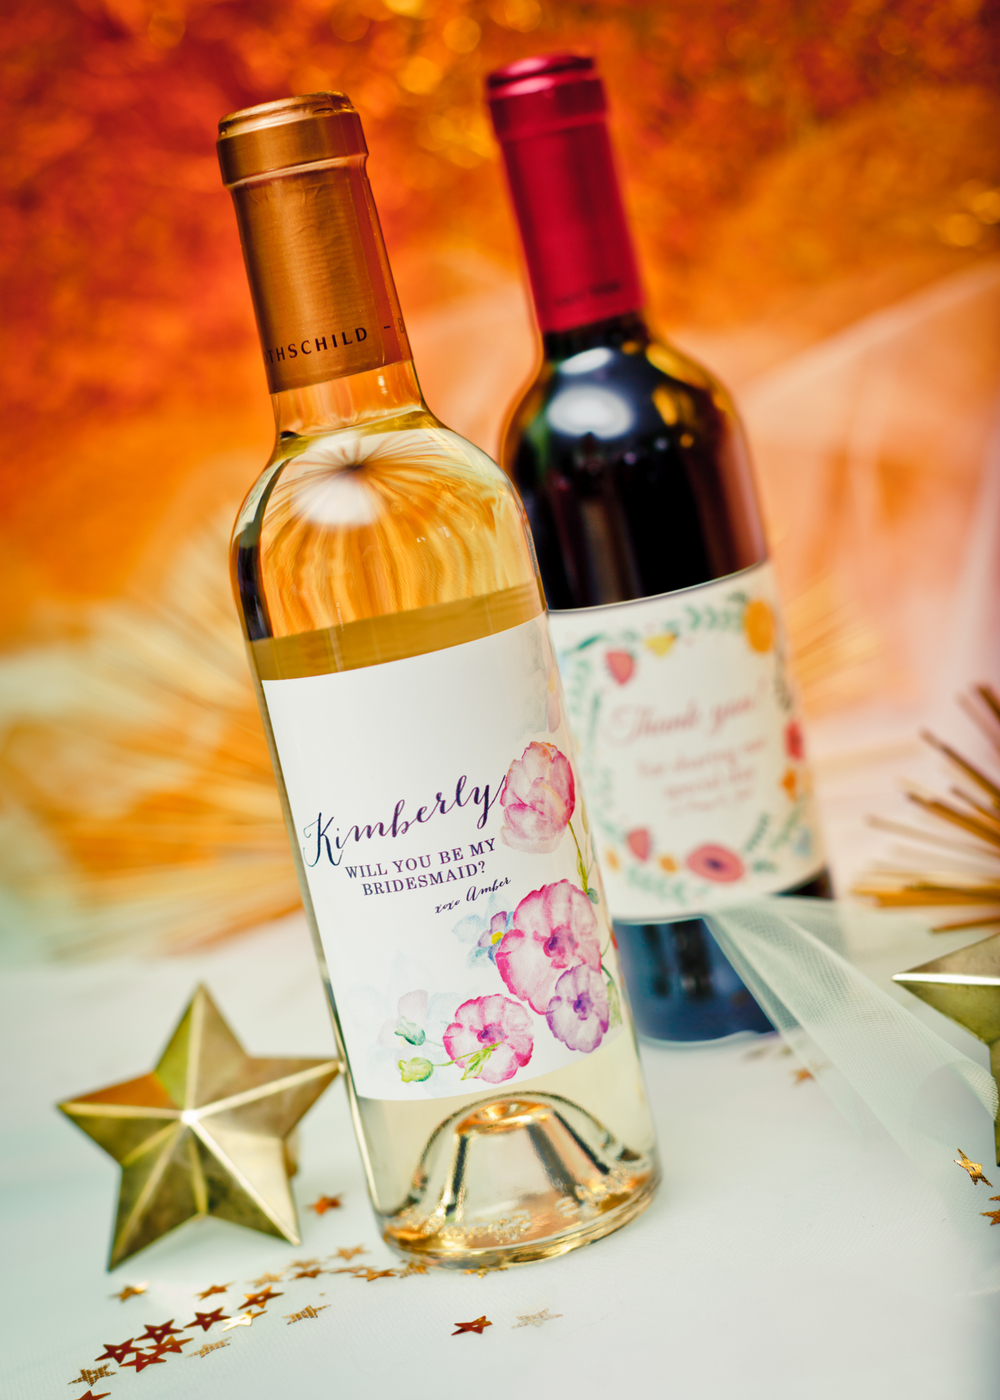 Personalized Wine Bottles @www.thedetaileddiva.com.jpg